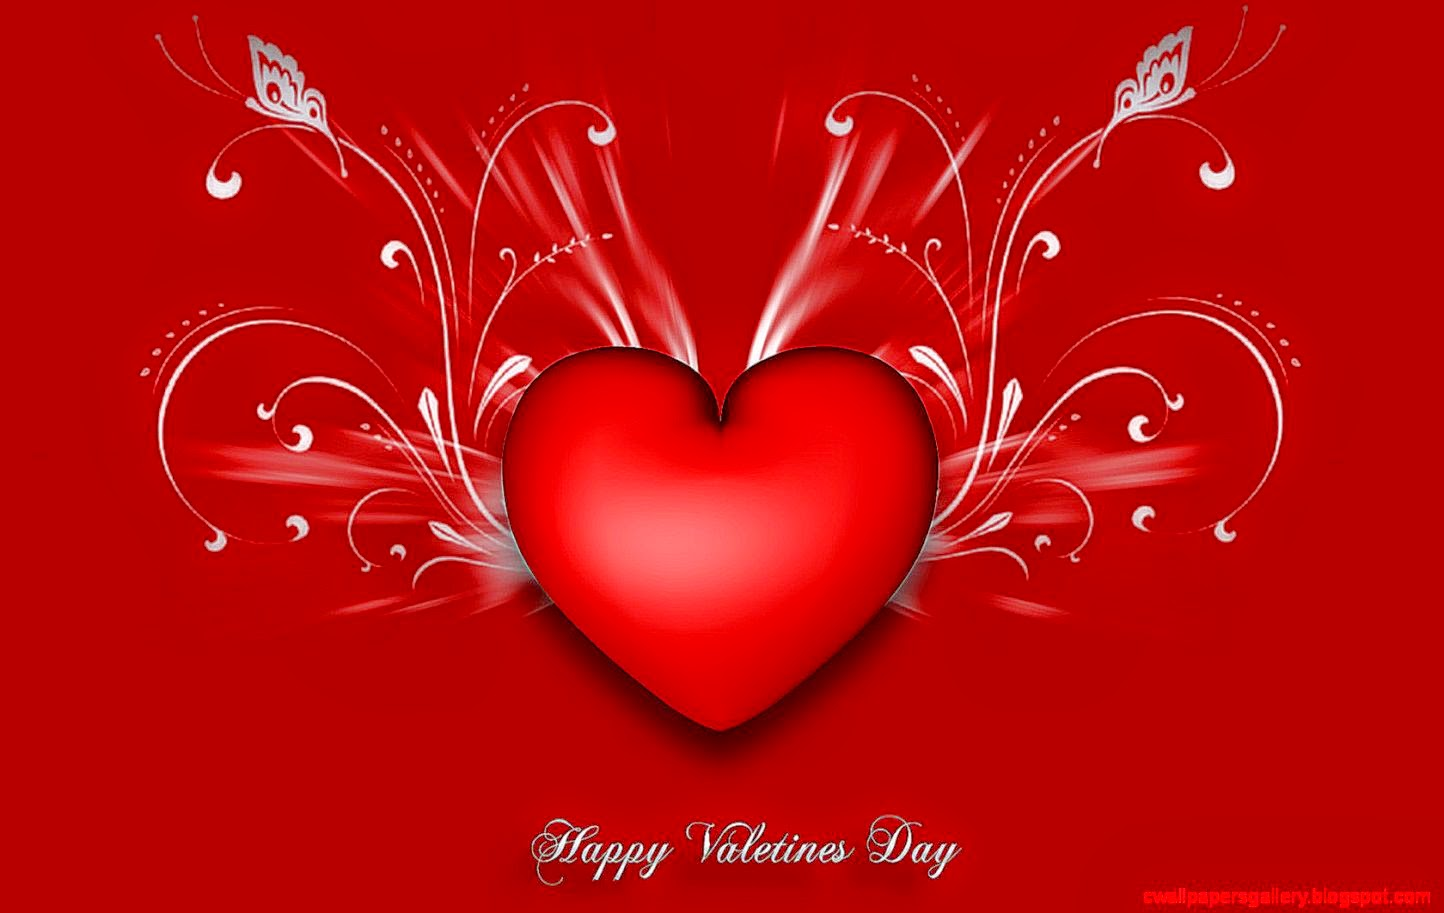 Valentine Heart Background Wallpaper | Wallpapers Gallery